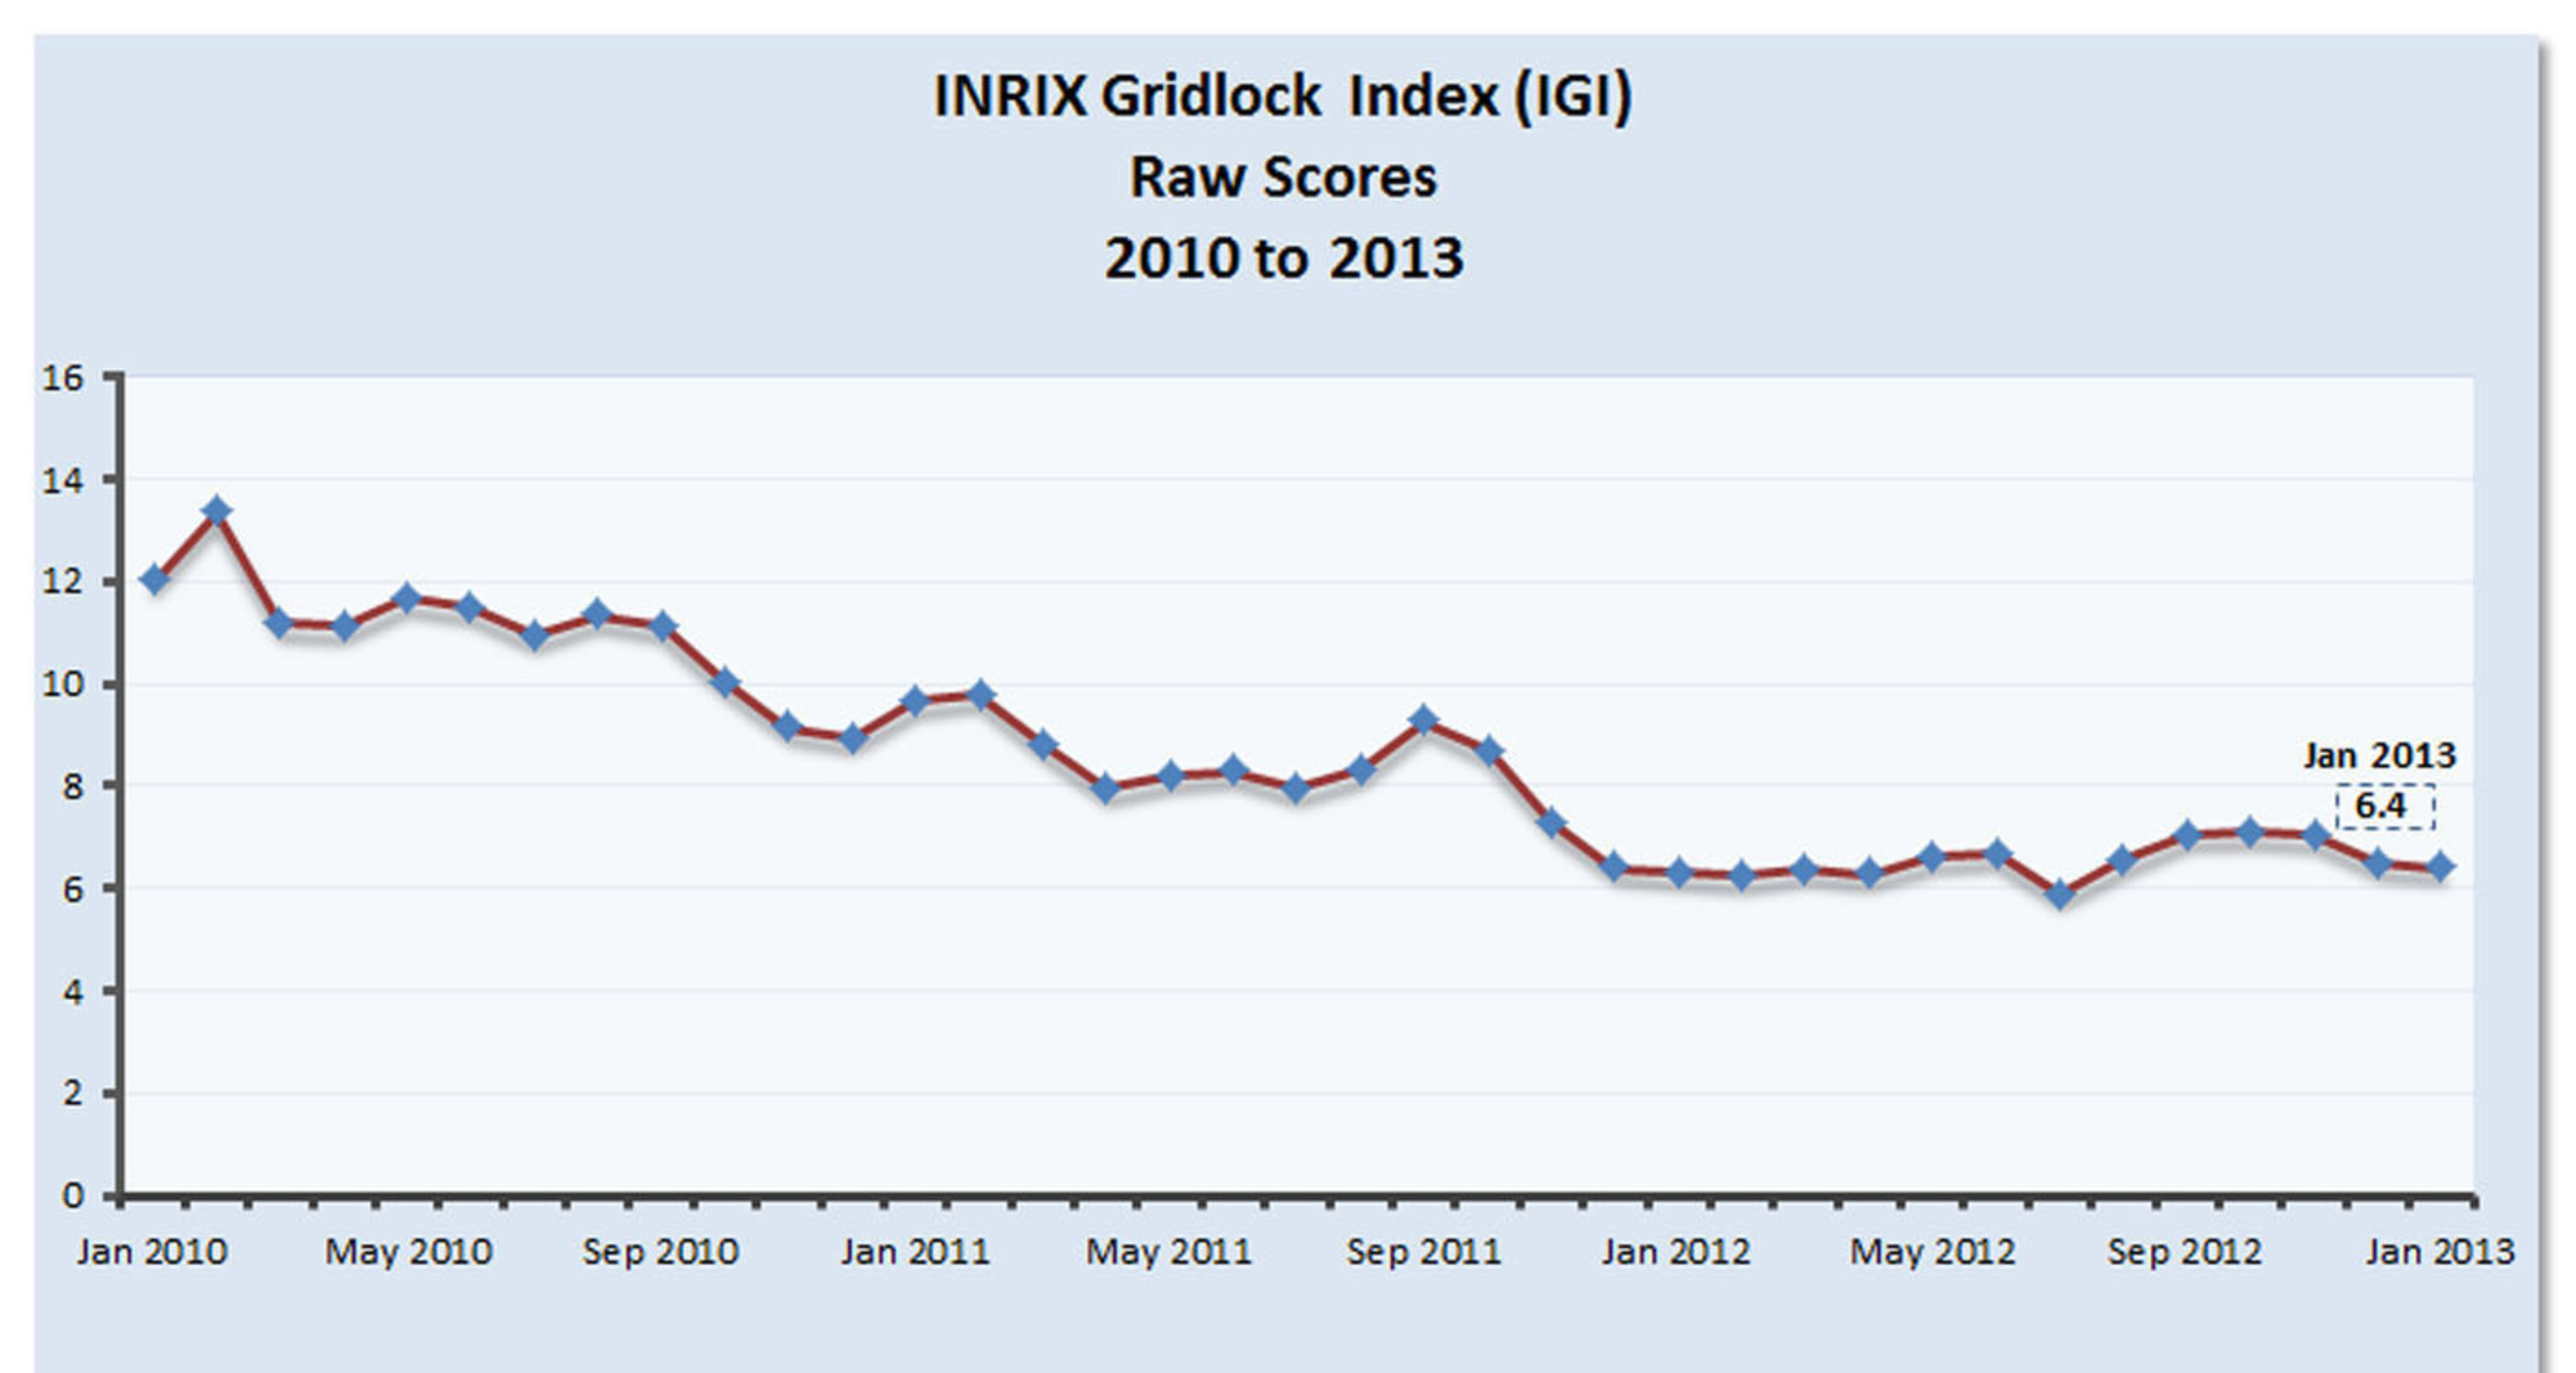 While the INRIX Gridlock Index for January 2013 shows the economy might be stabilizing, it has not recovered ...